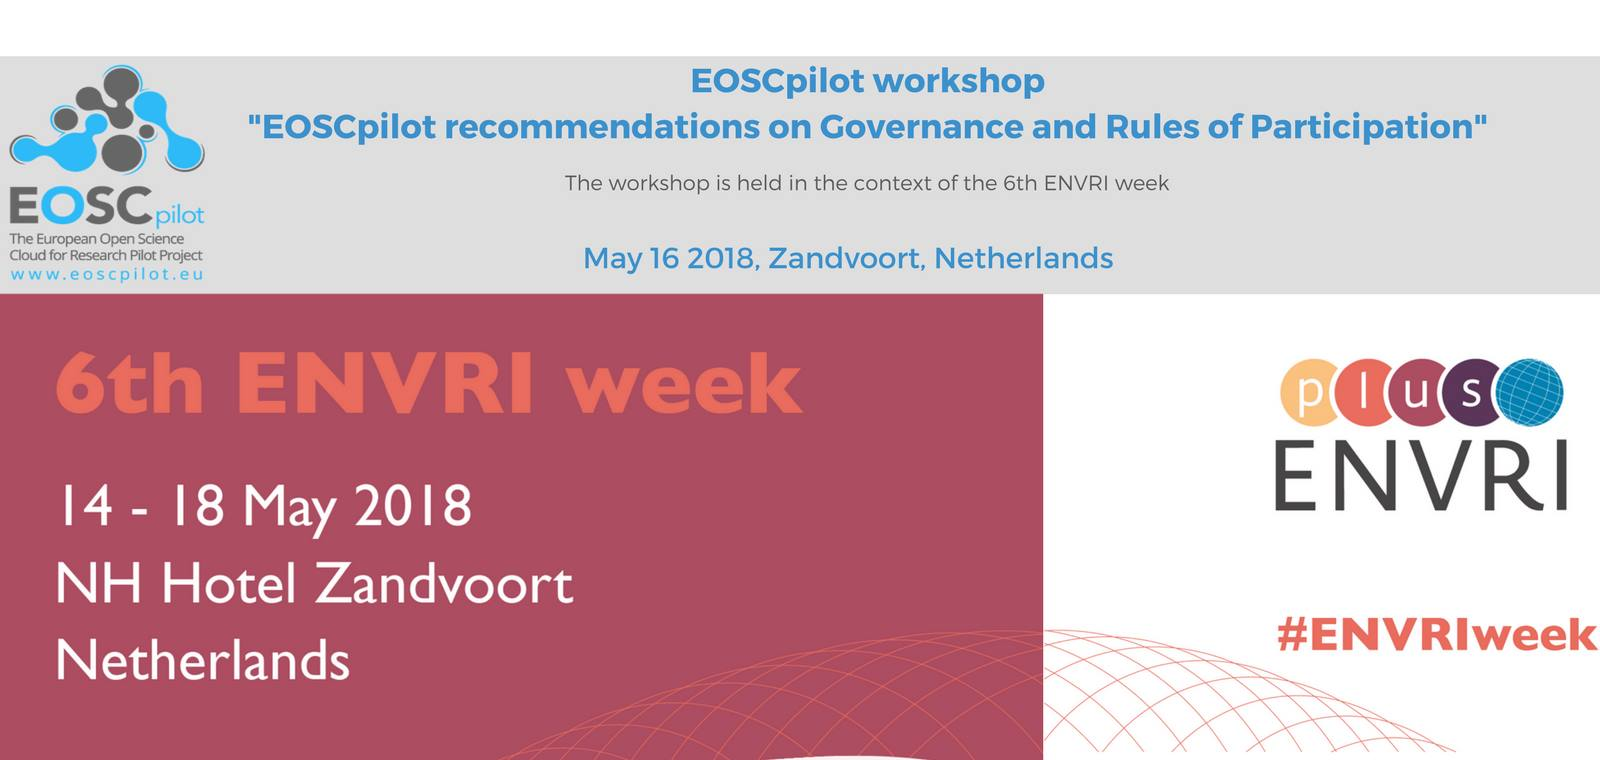 ENVRI week´s EOSCpilot workshop